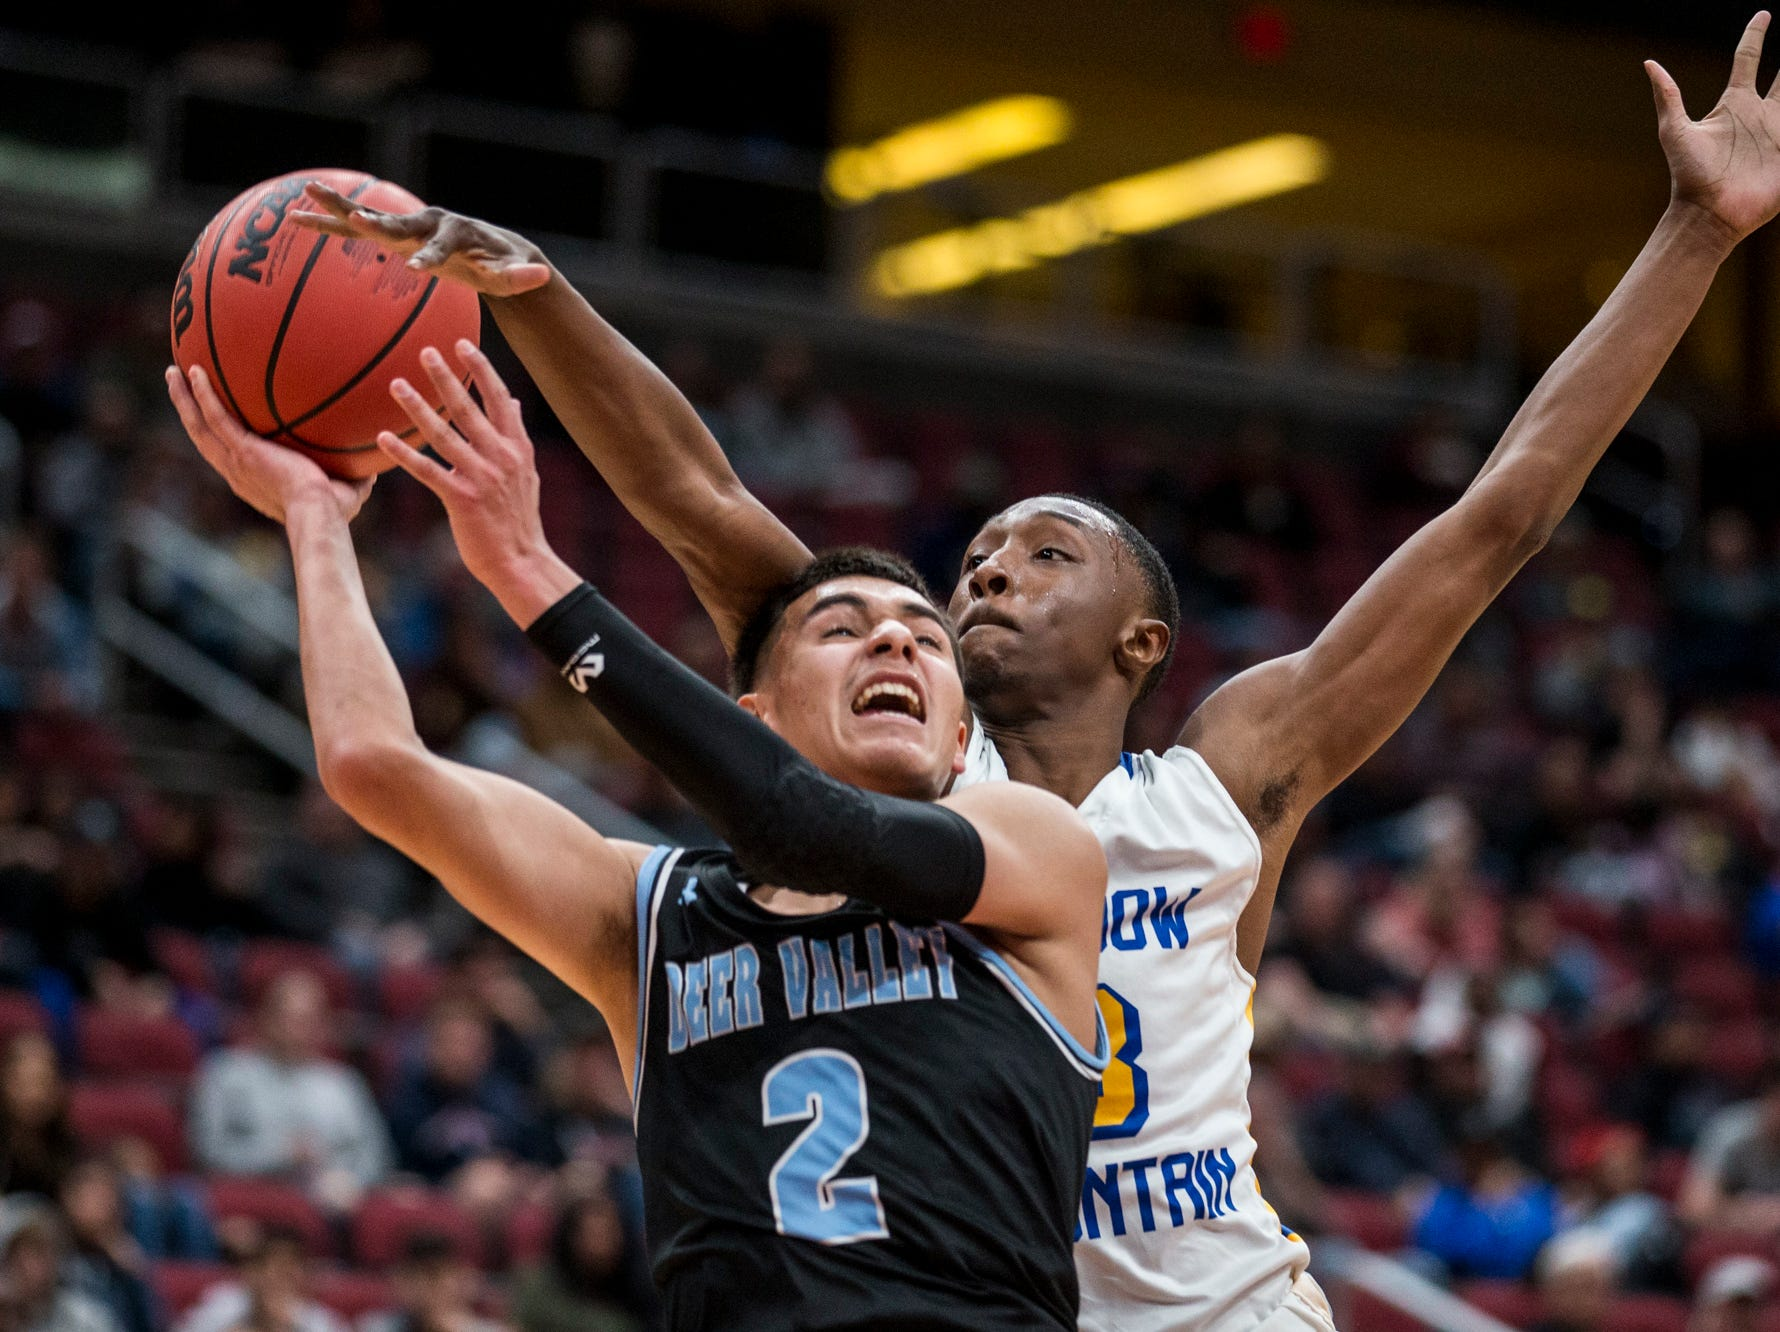 Shadow Mountain's Devotes Cobbs tries to block Deer Valley's Johny Diaz's shot during the 4A boys basketball championship on Saturday, Feb. 23, 2019, at Gila River Arena in Glendale, Ariz.